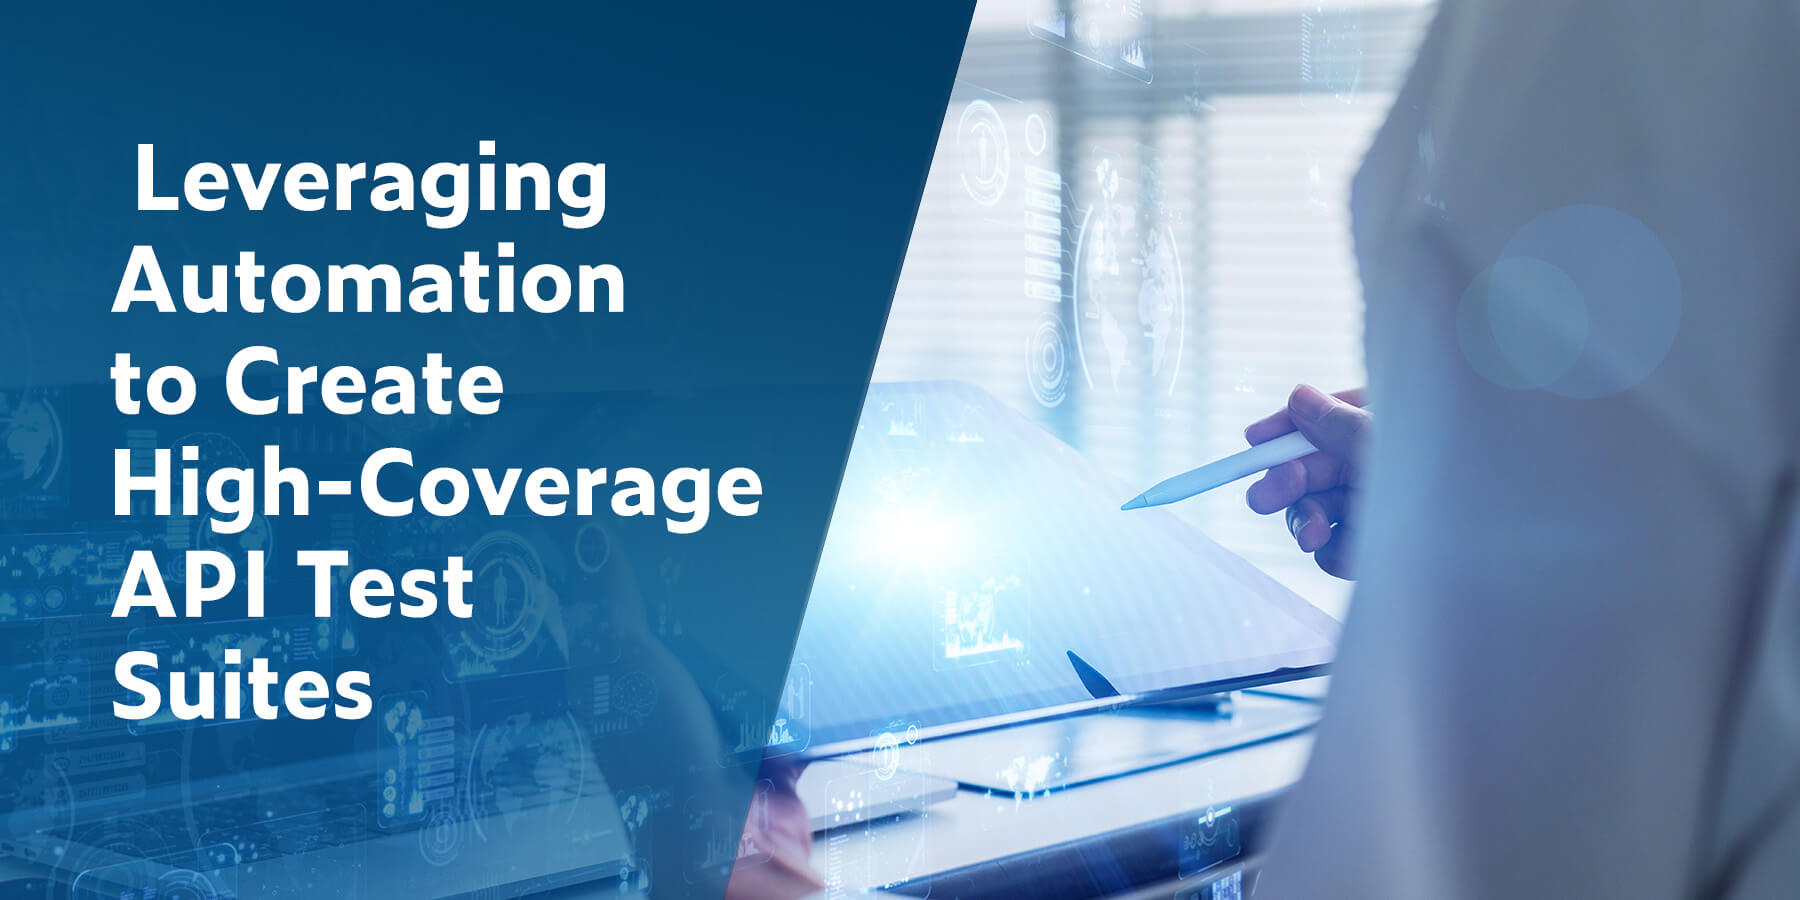 Leveraging Automation to Create High-Coverage API Test Suites